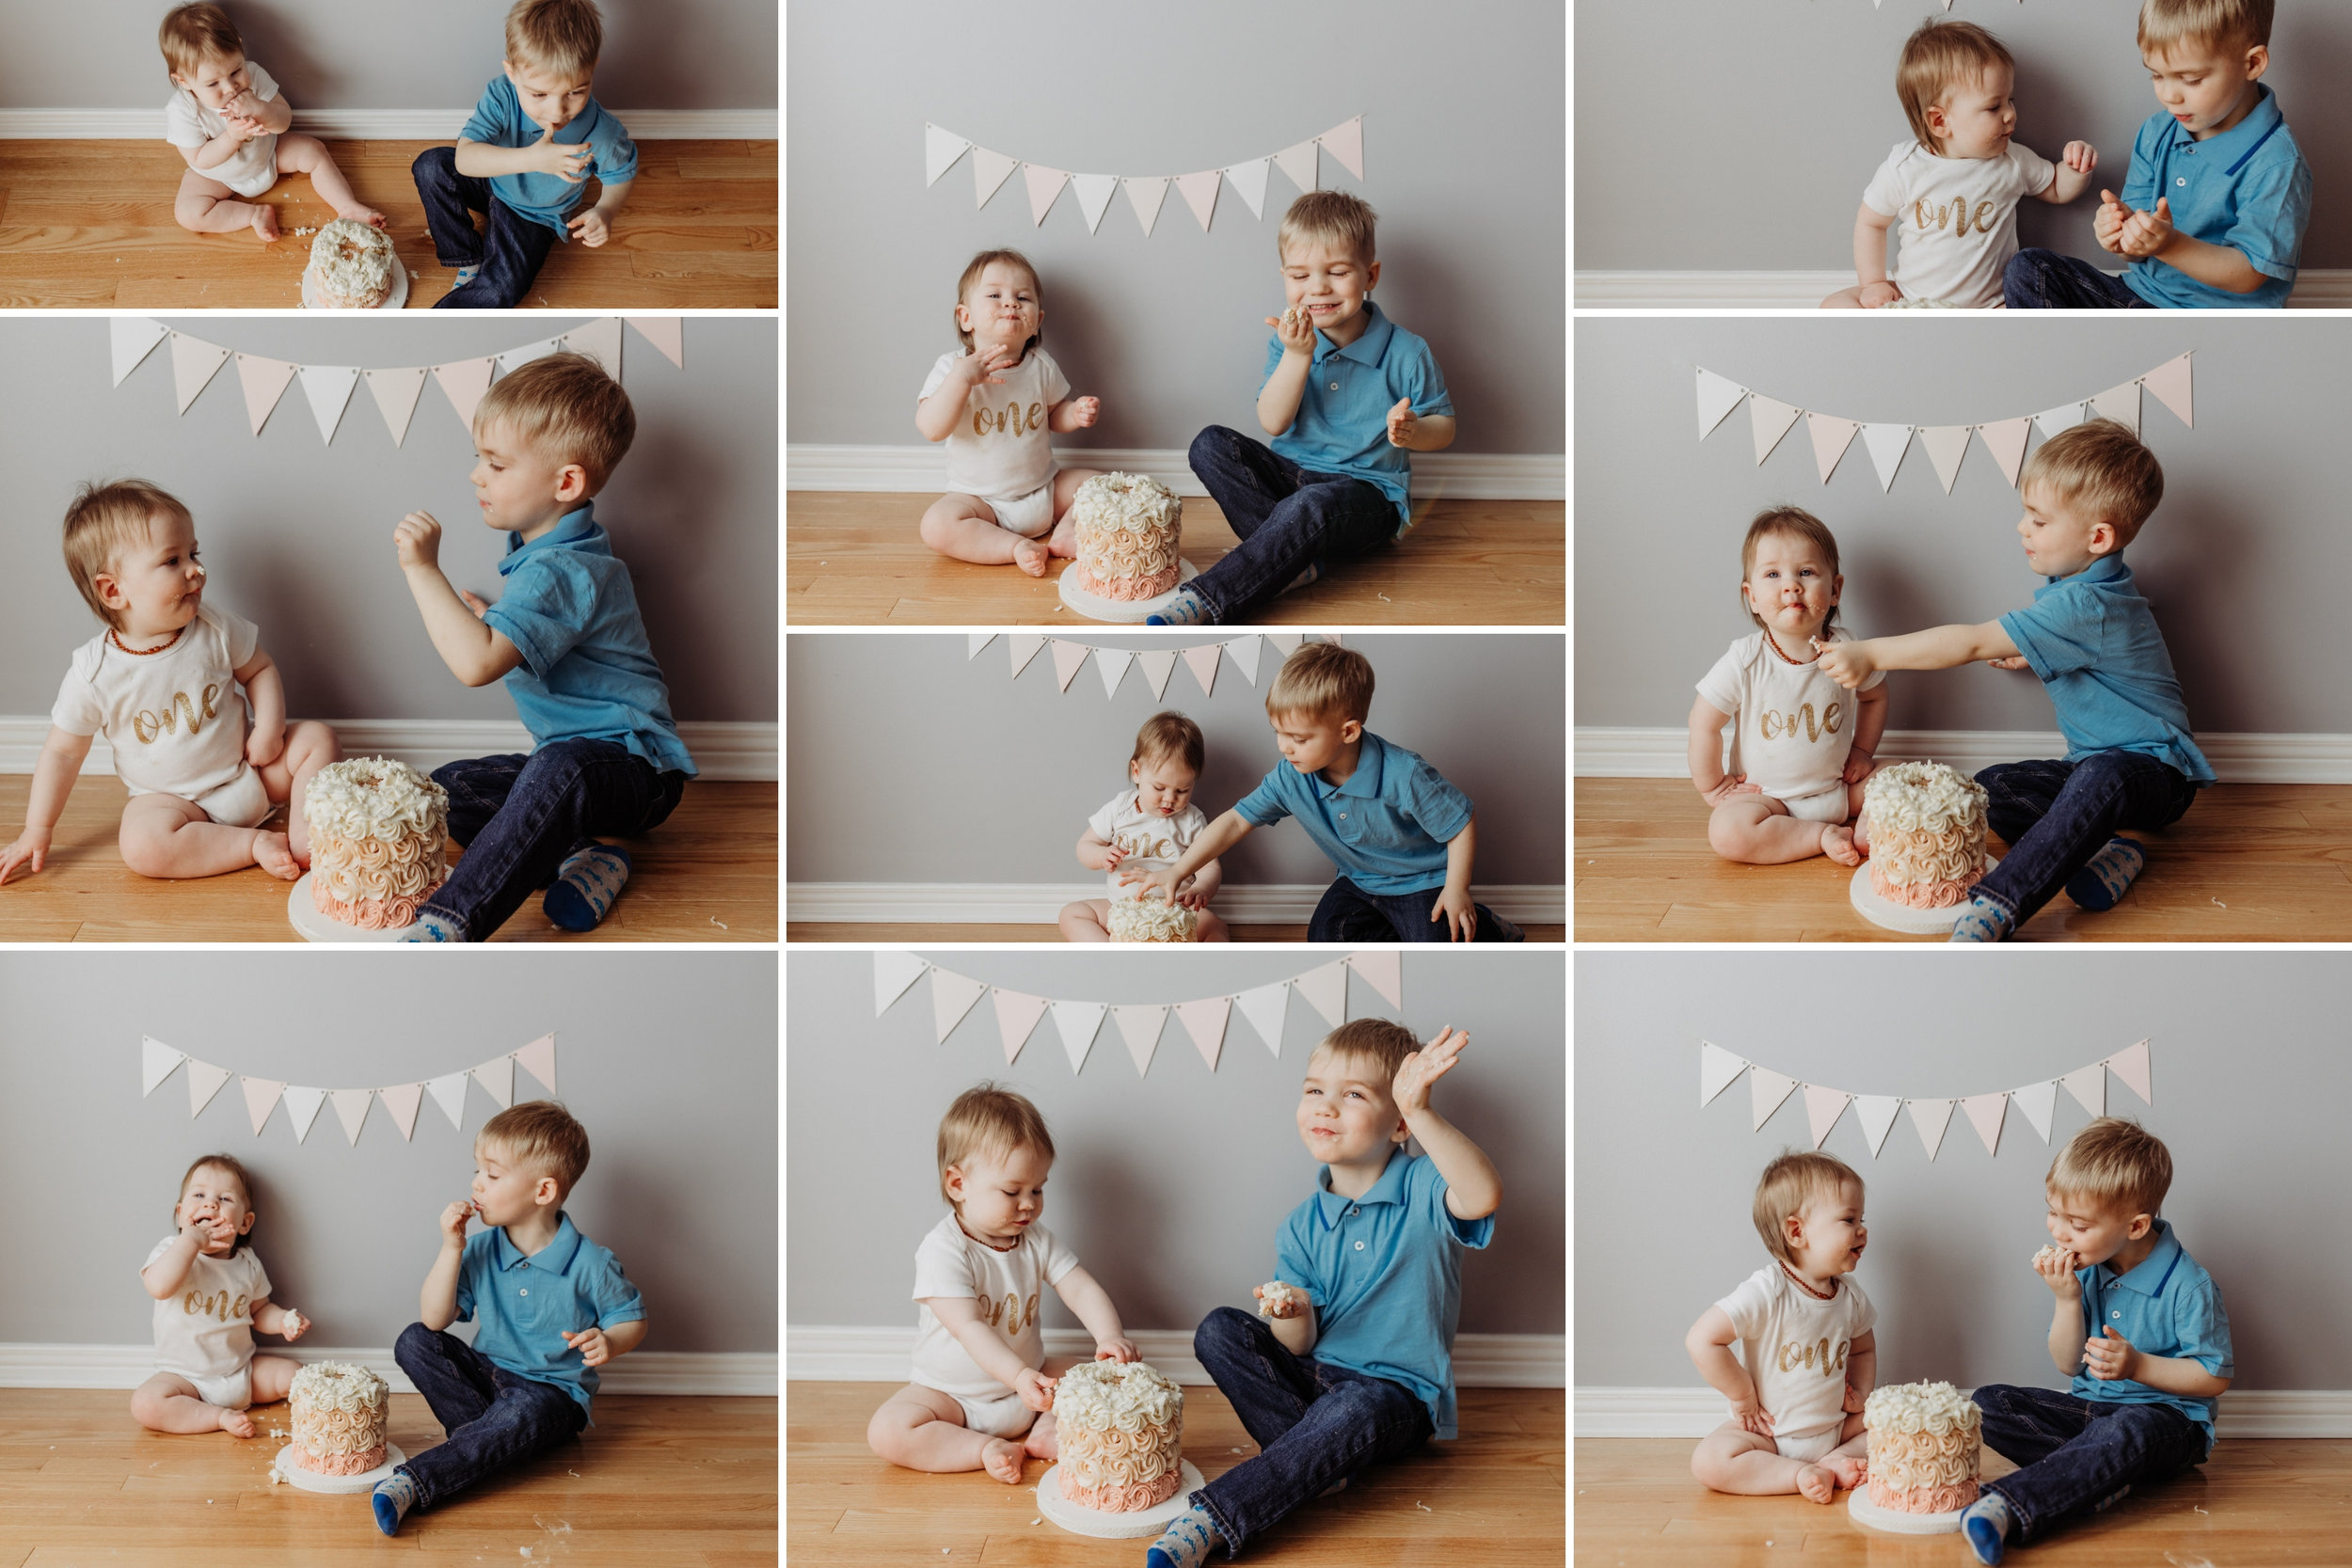 brother and sister eating birthday cake together at the cake smash photo session in Kanata